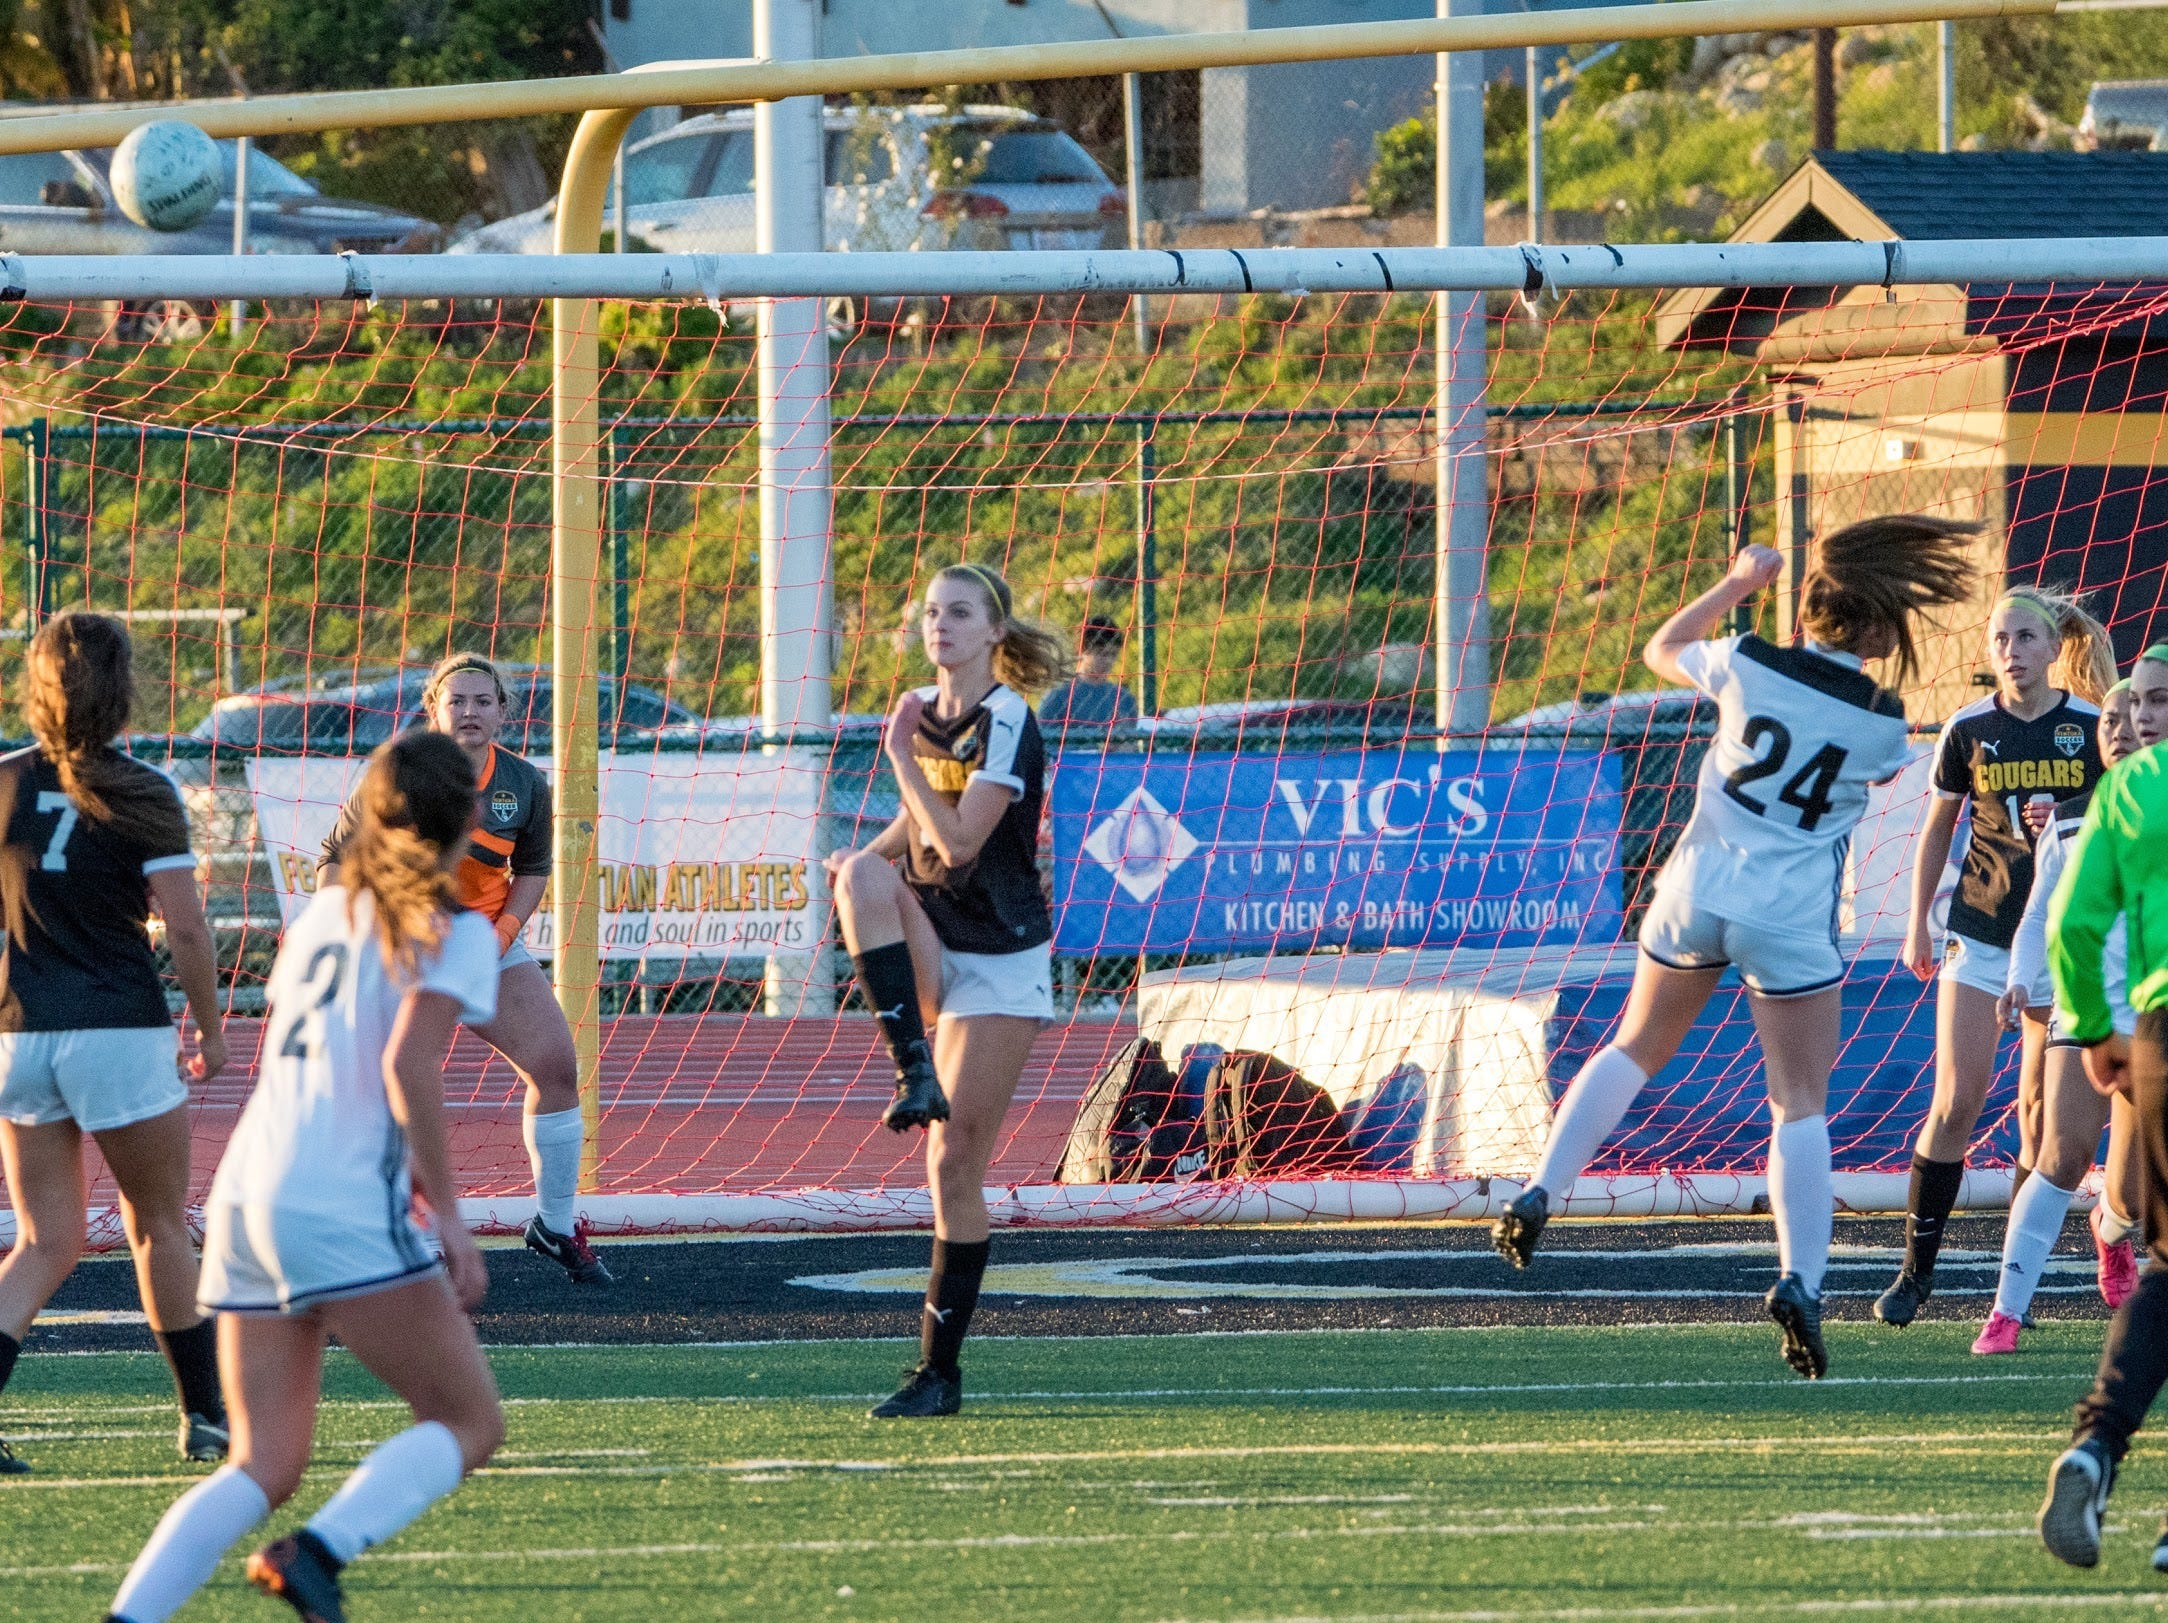 Ventura senior sweeper Alyssa Moore, center, clears the ball against Glendora on Friday in the second round of the CIF-Southern Section Division 2 girls soccer playoffs at Larrabee Stadium. Ventura won, 4-1.